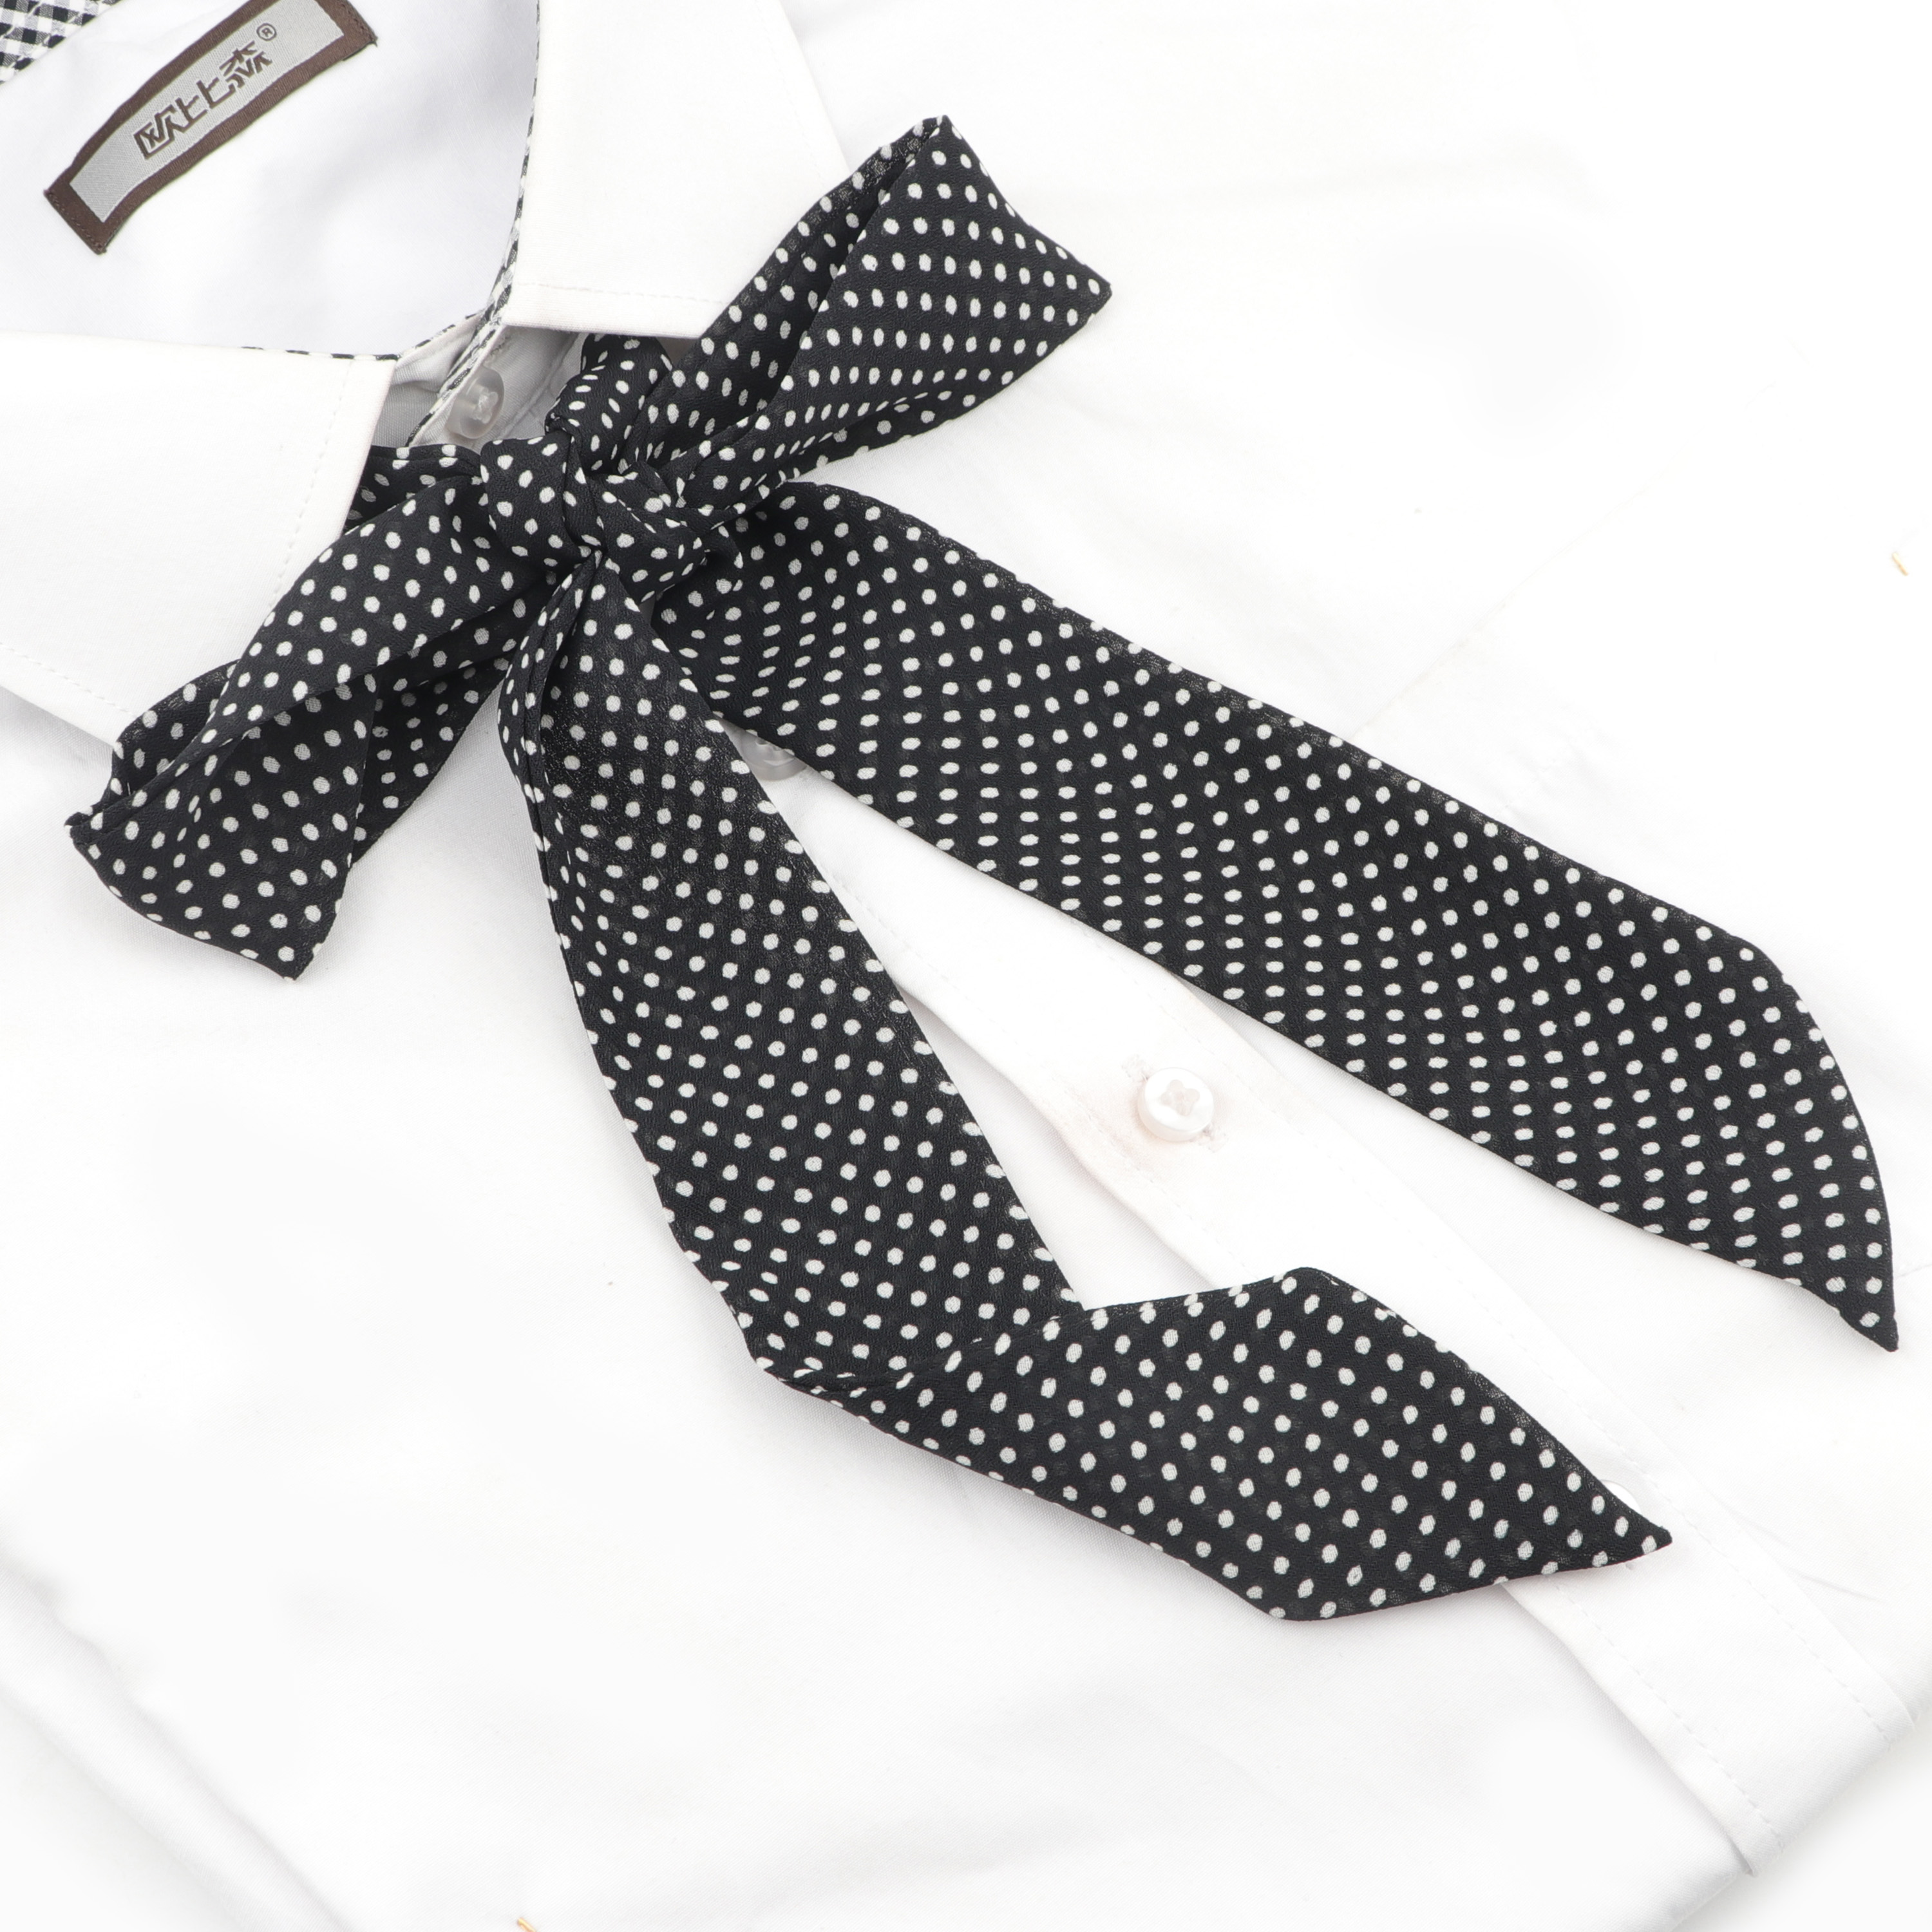 1PC Hot Women Girls Silk Bow Ties Chiffon Lithe Ribbons Striped Butterfly Bowties Cravat Vintage Neck Wear Accessories